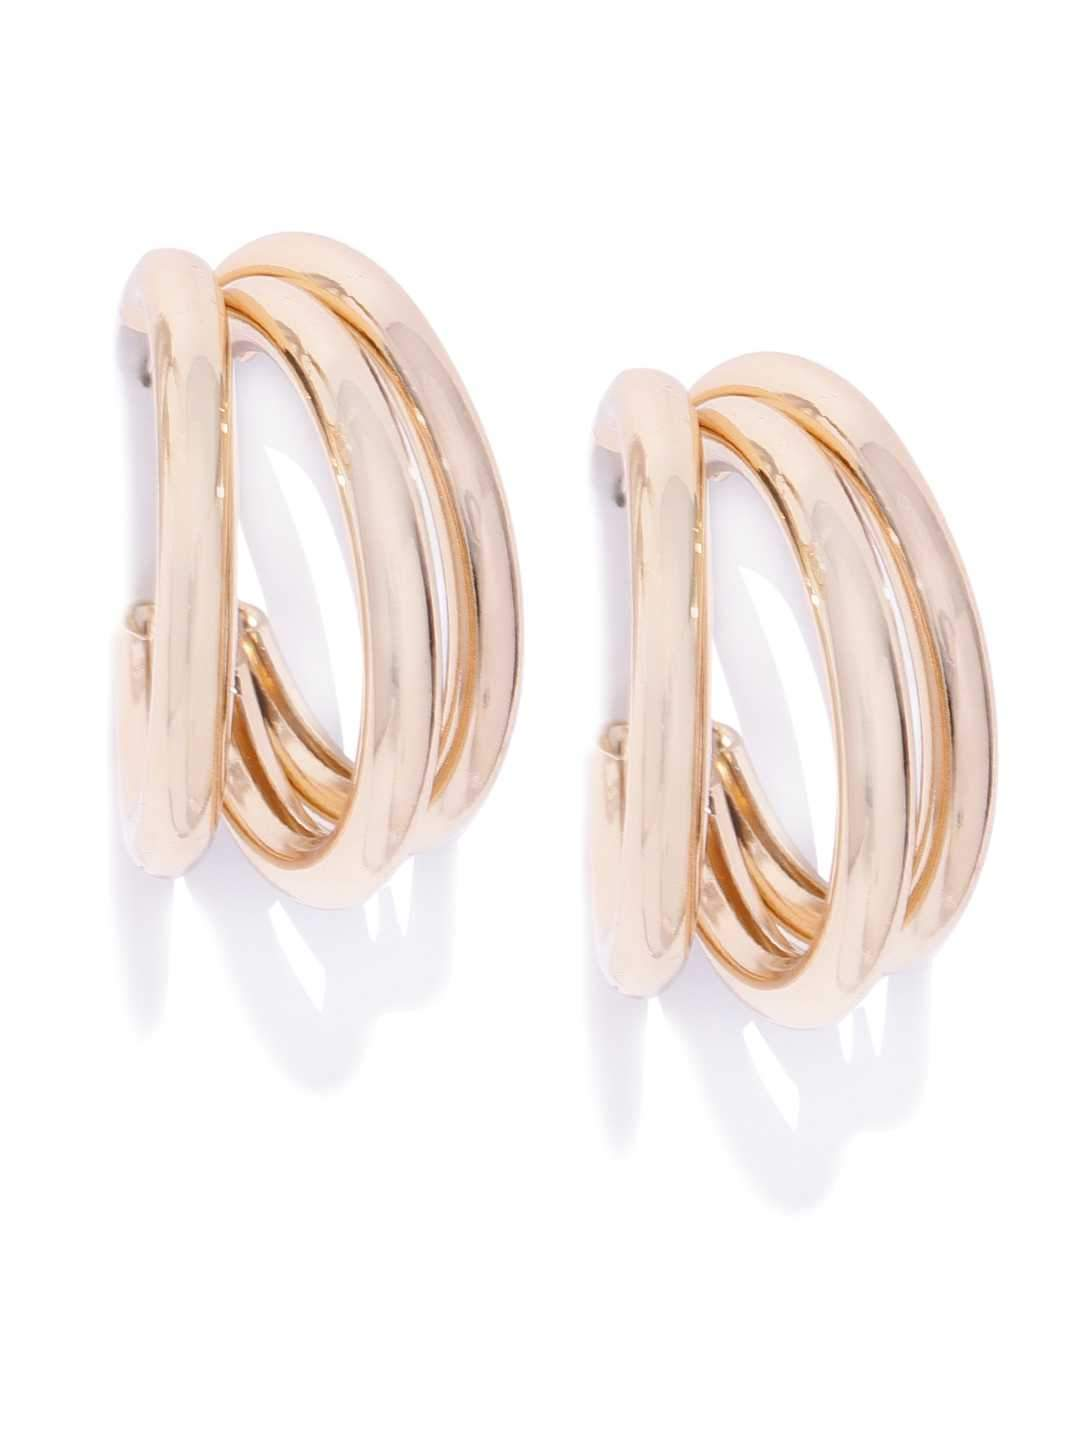 Bellofox Baby Chunk Hoops Earrings BE3182